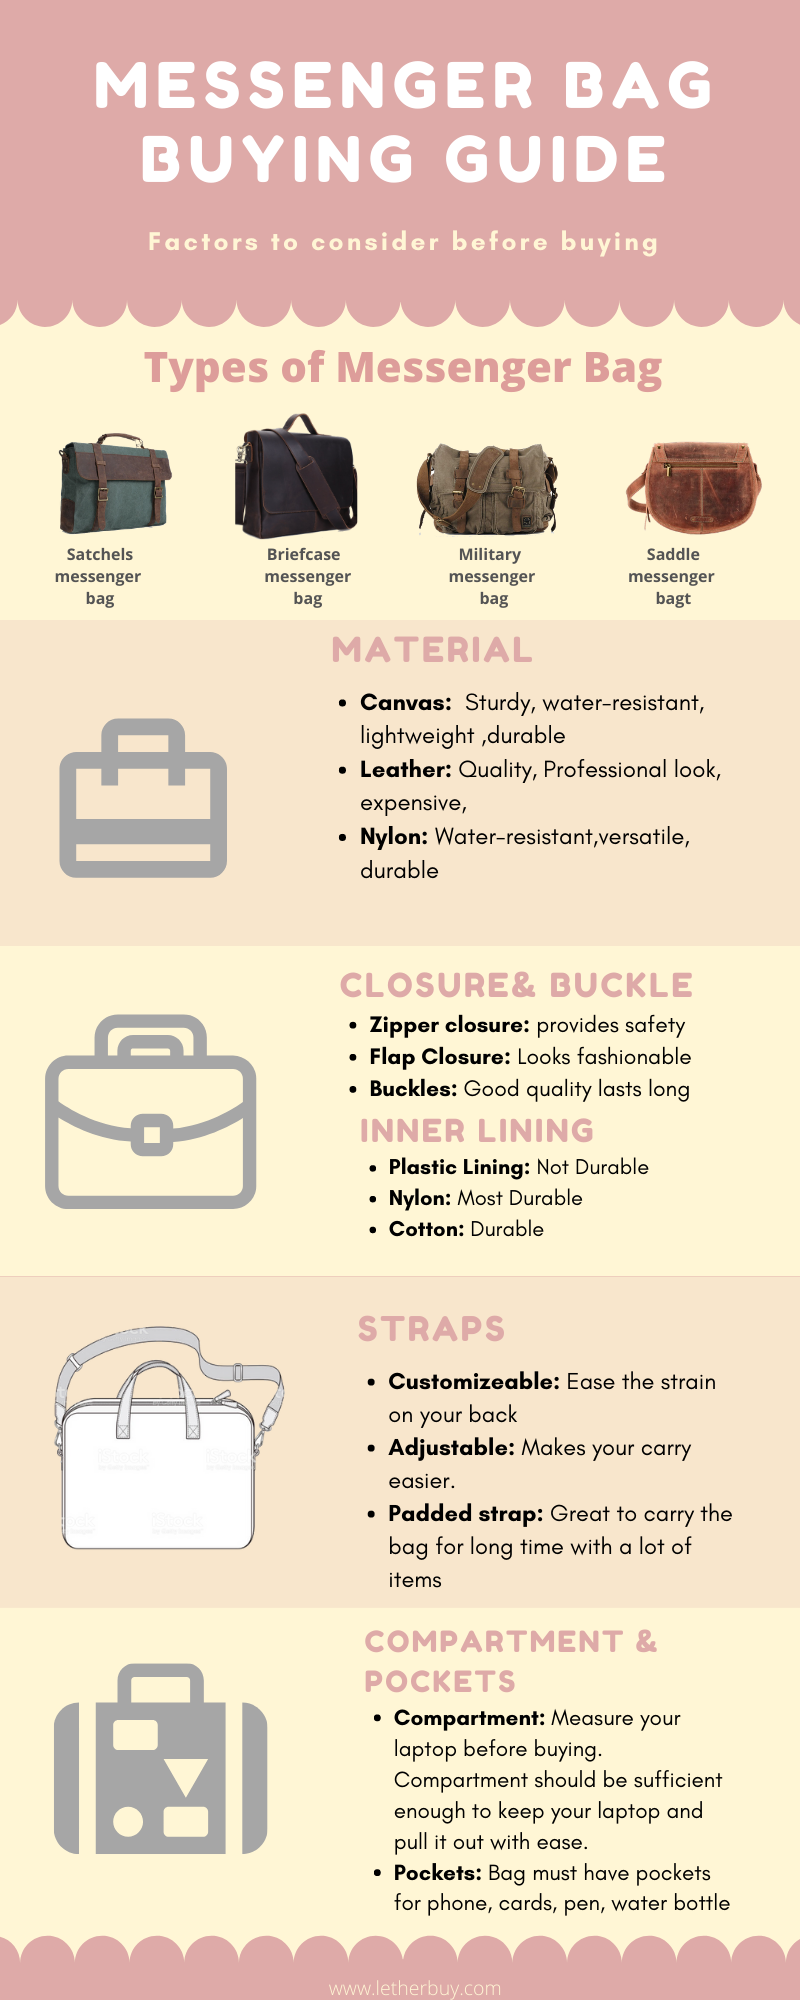 Messenger Bag Buying Guide infographic